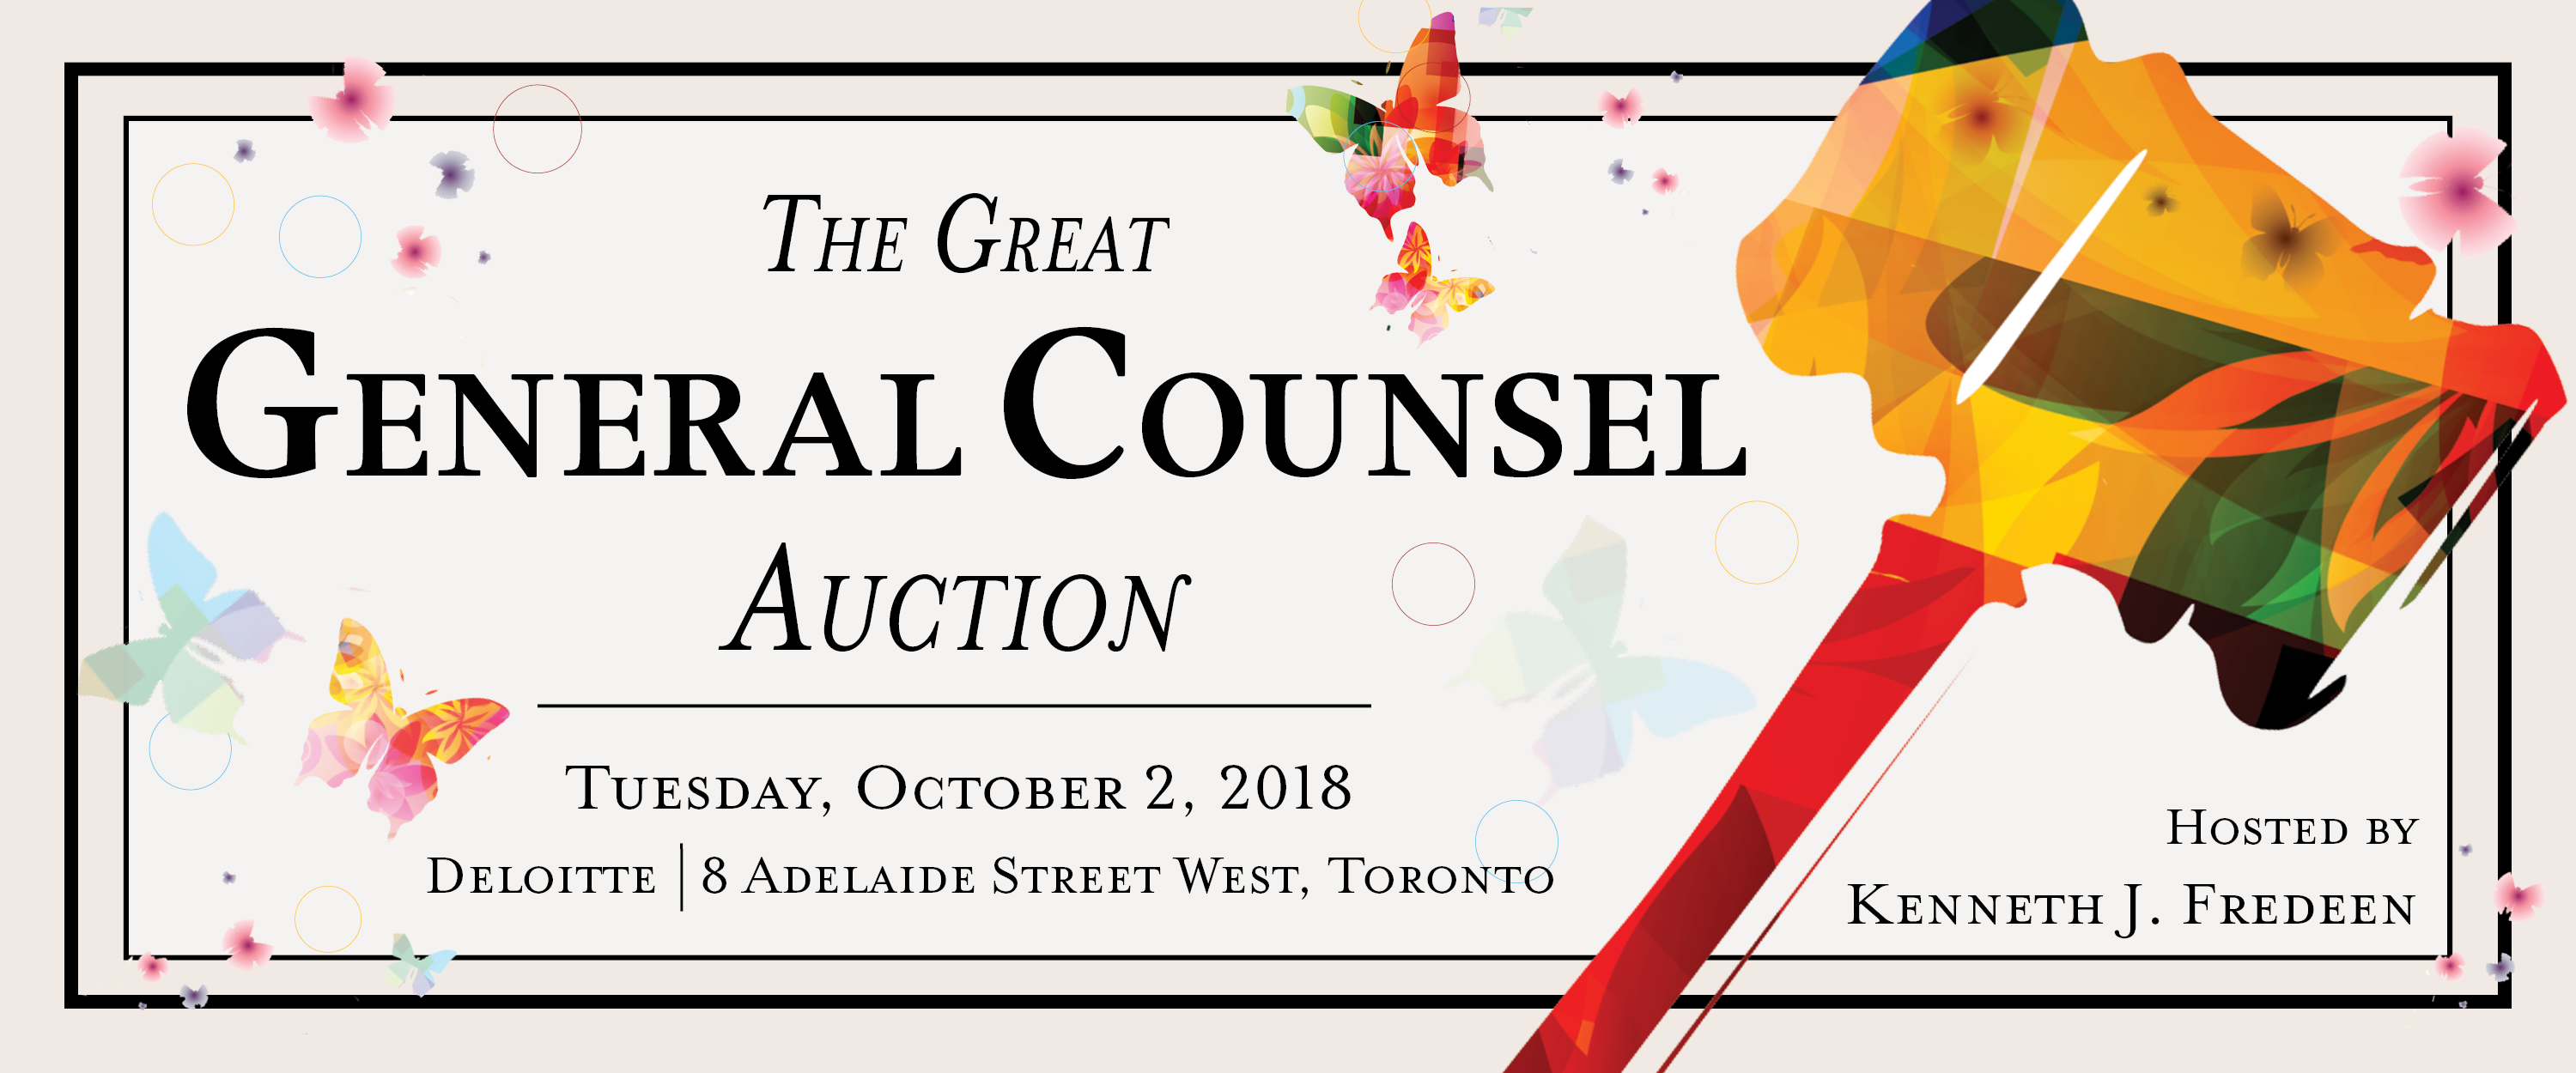 Great Counsel Auction 2018 tile